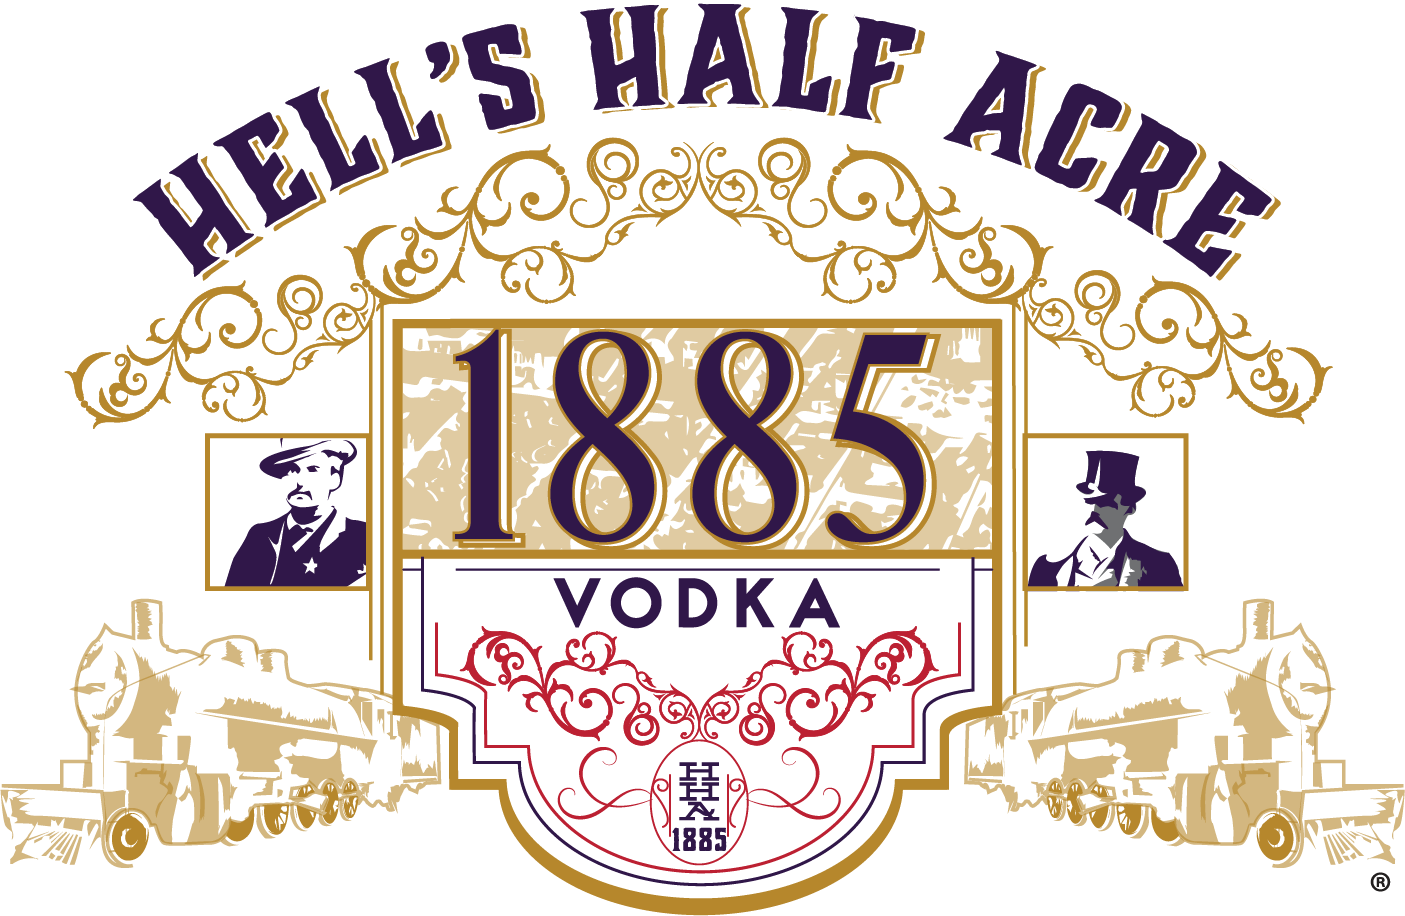 Hell's Half Acre 1885 Vodka Logo